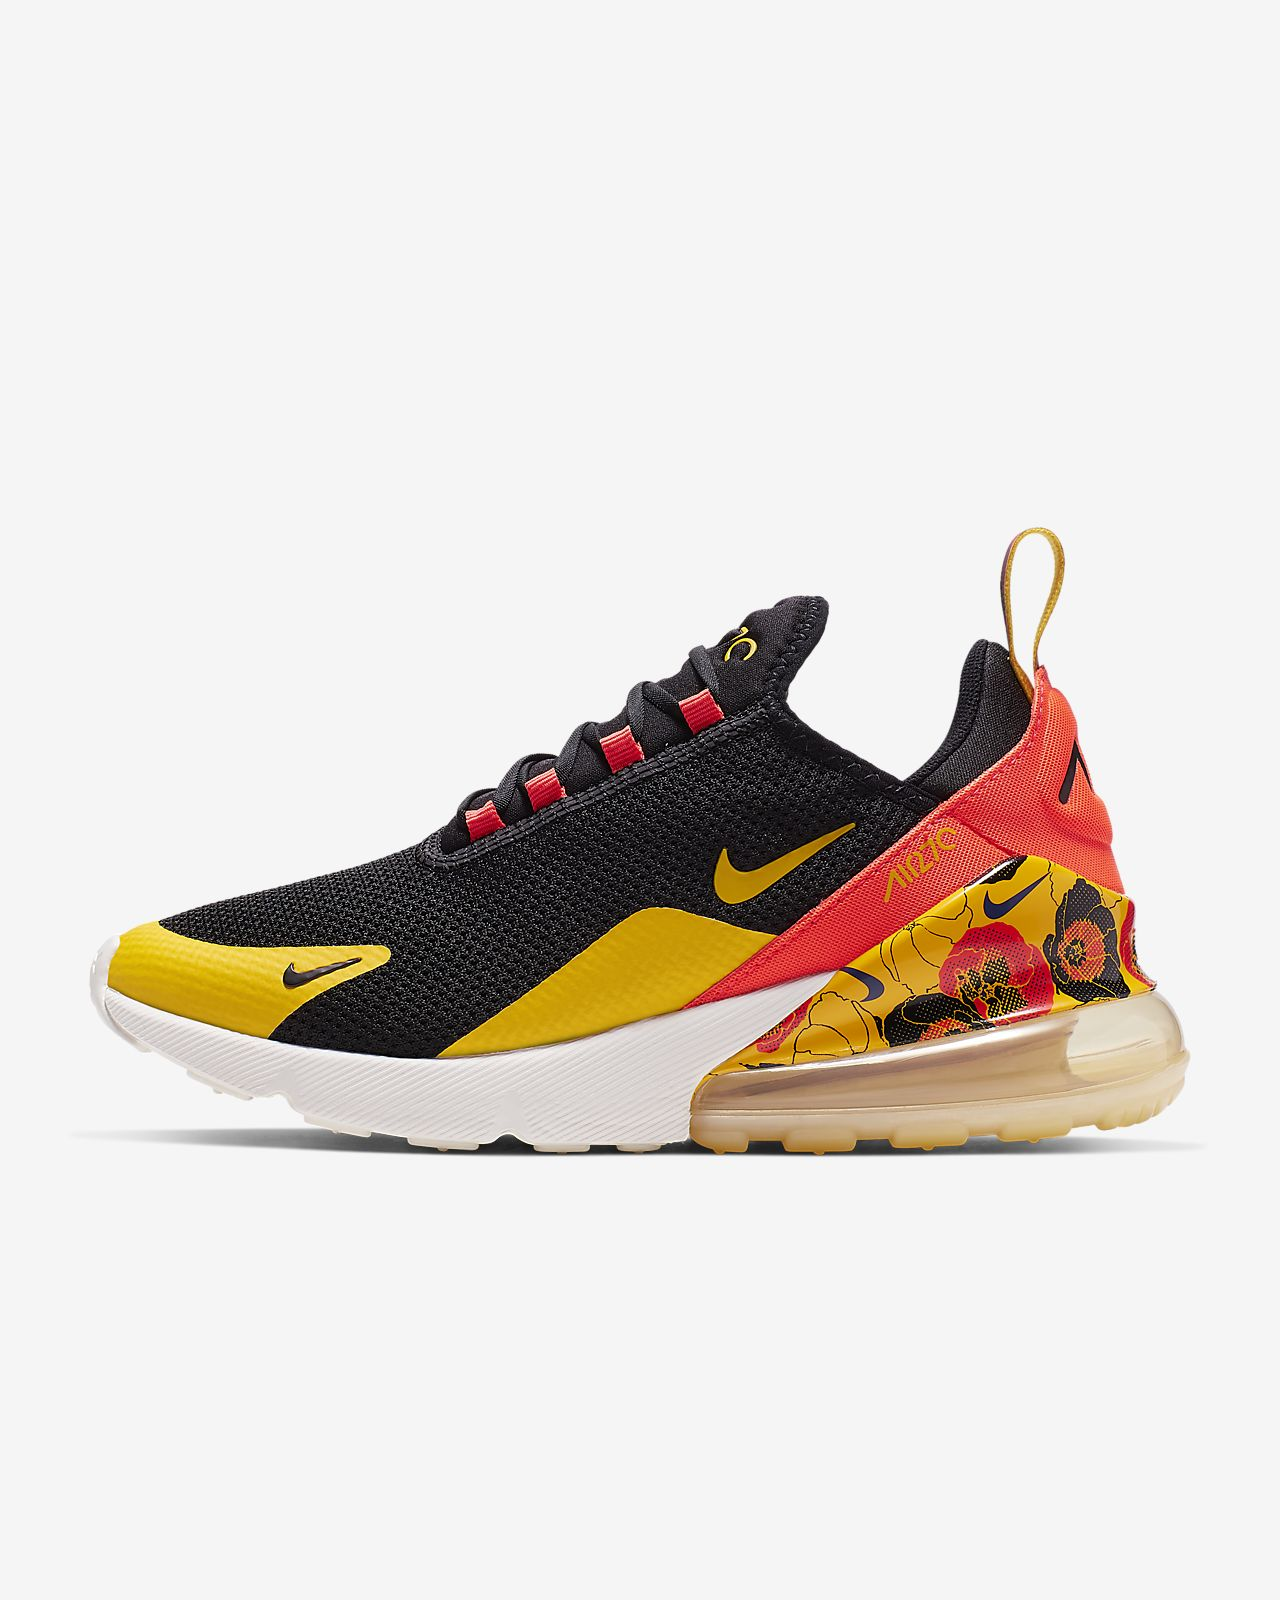 info for fe0c0 364fb ... Sko Nike Air Max 270 SE Floral för kvinnor